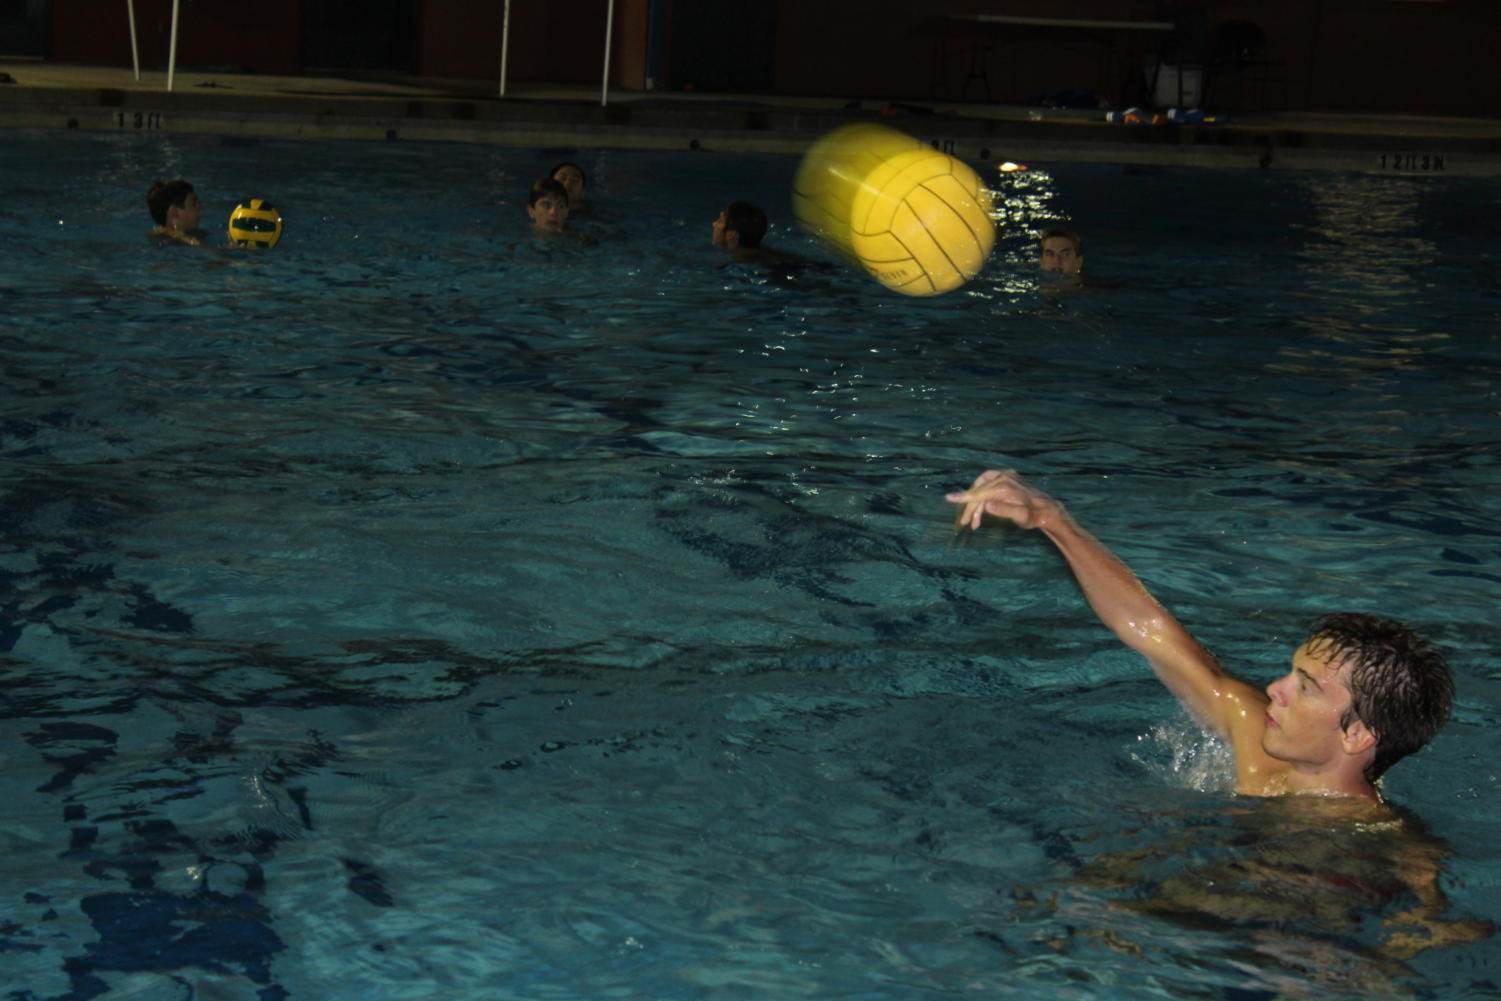 The+signature+bright+yellow+water+polo+ball+is+hurled+across+the+pool+to+Sophomore+Isaac+Benjamin.+While+attempting+to+catch+passes+players+must+also+tread+to+keep+their+heads+and+shoulders+above+the+water.+The+constant+movement+is+one+of+the+reasons+why+water+polo+is+considered+one+of+the+most+challenging+sports+of+all+time.+